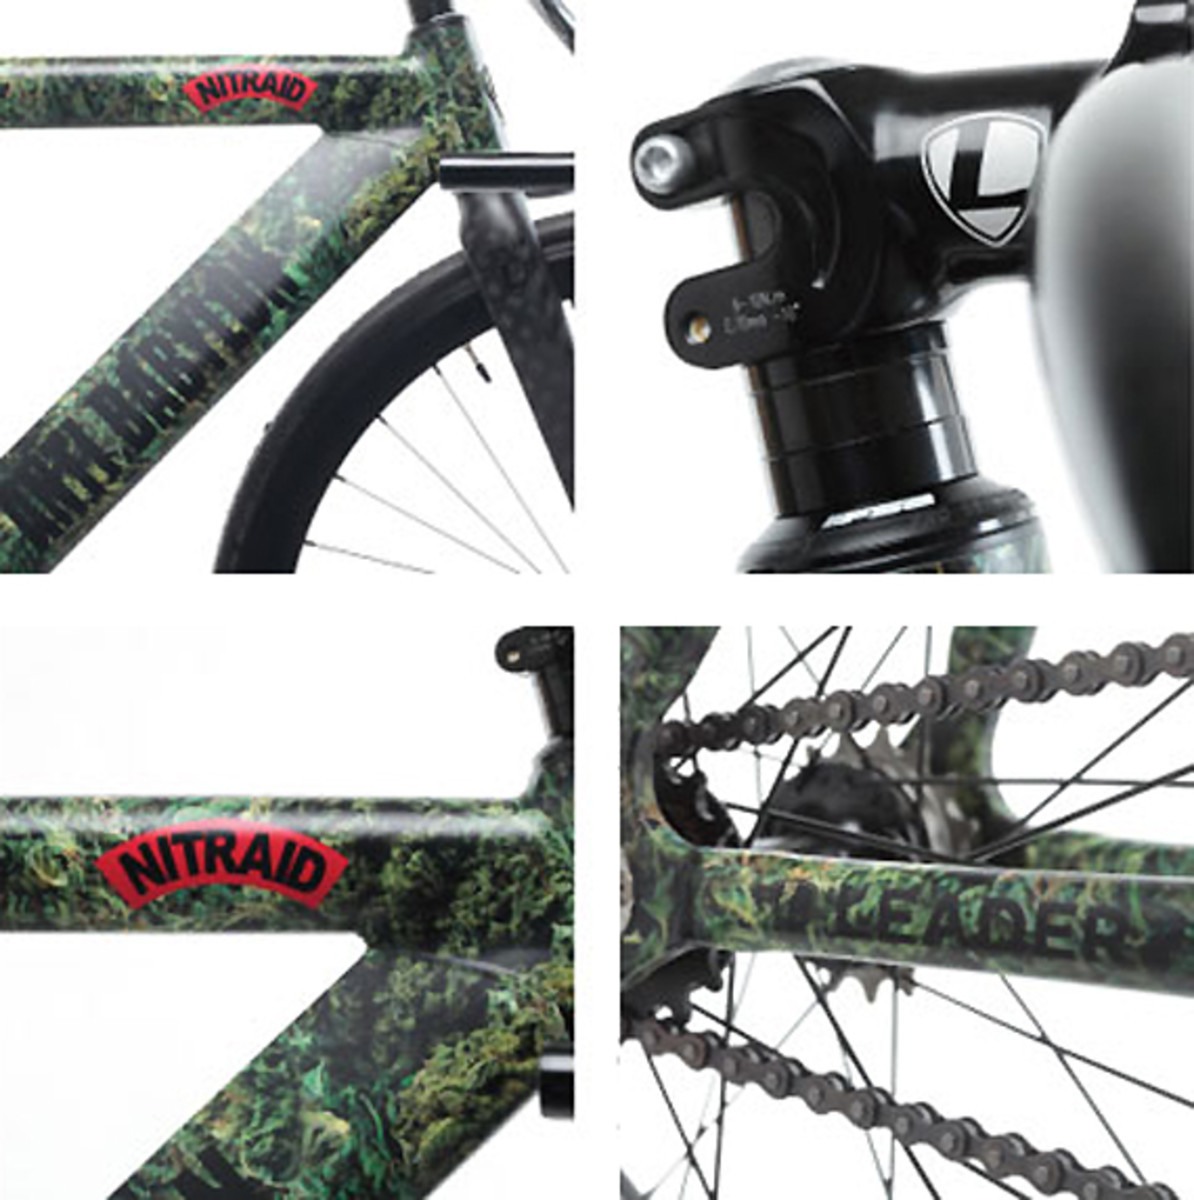 nitraid-leader-bike-735tr-dope-forest-fixed-gear-bicycle-02